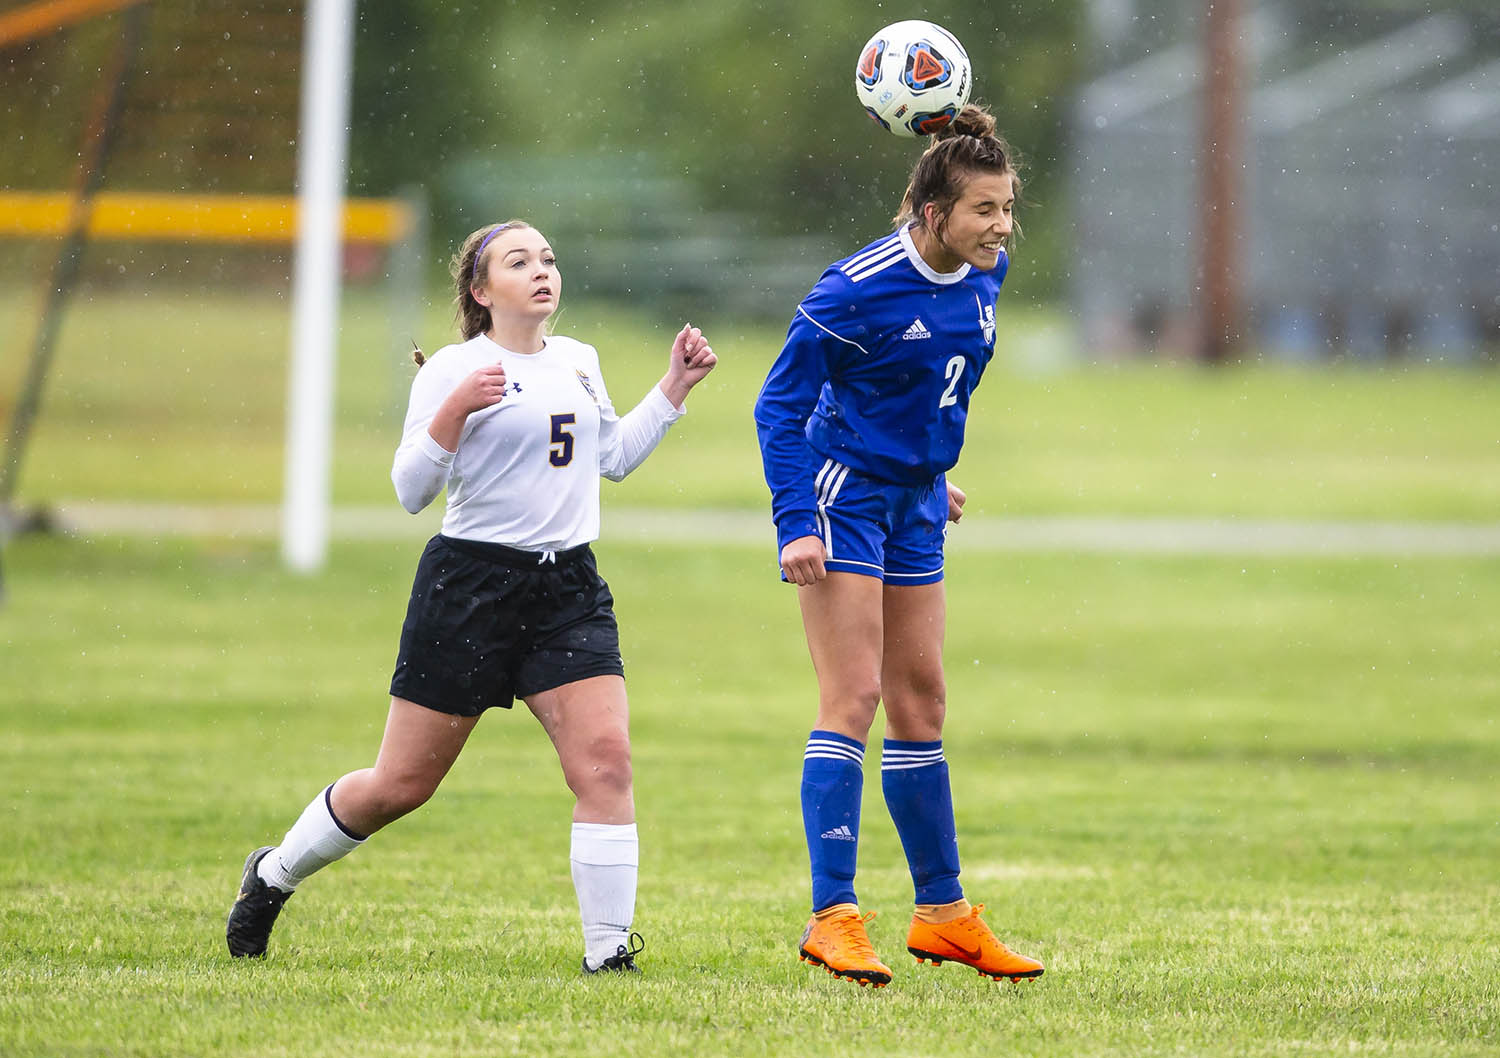 Lutheran's Emily Stoeckel (2) wins a header over Williamsville's Aubreyanna Brown (5) in the second half during the Class 1A Riverton Regional Championship at the Riverton Field of Dreams, Saturday, May 11, 2019, in Riverton, Ill. [Justin L. Fowler/The State Journal-Register]